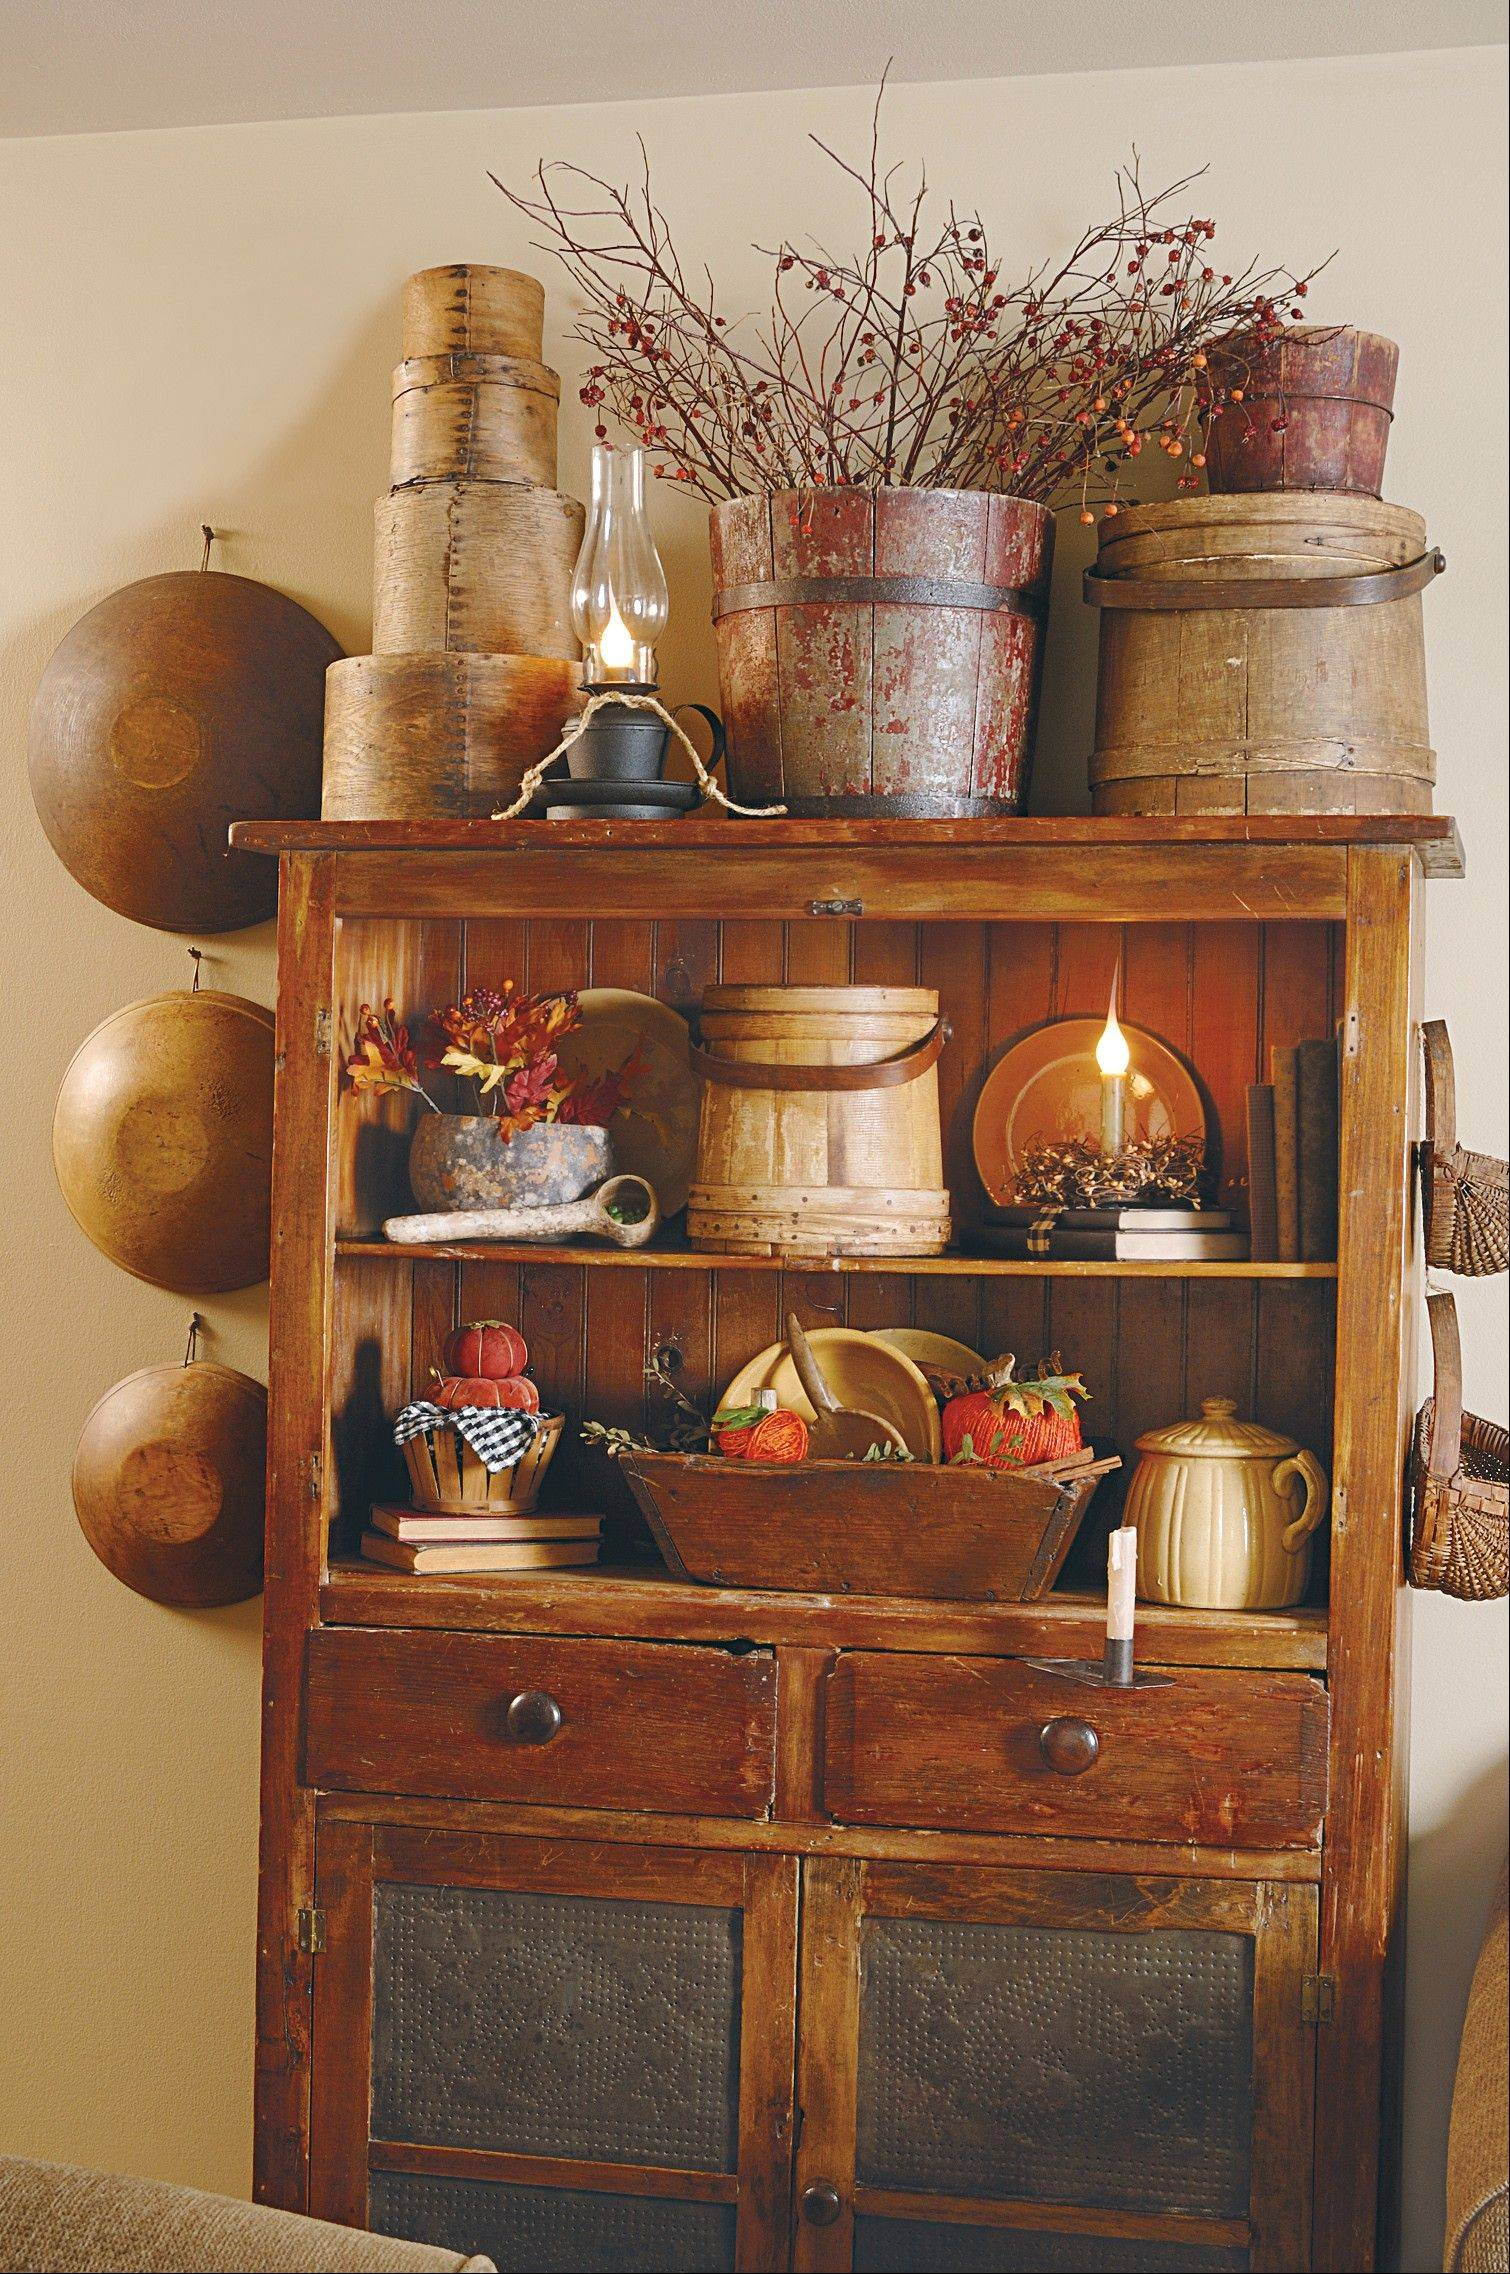 Illuminated by an oil lamp, an assortment of wood bowls, buckets, firkins, baskets and boxes keep the scene interesting in and around this cabinet.